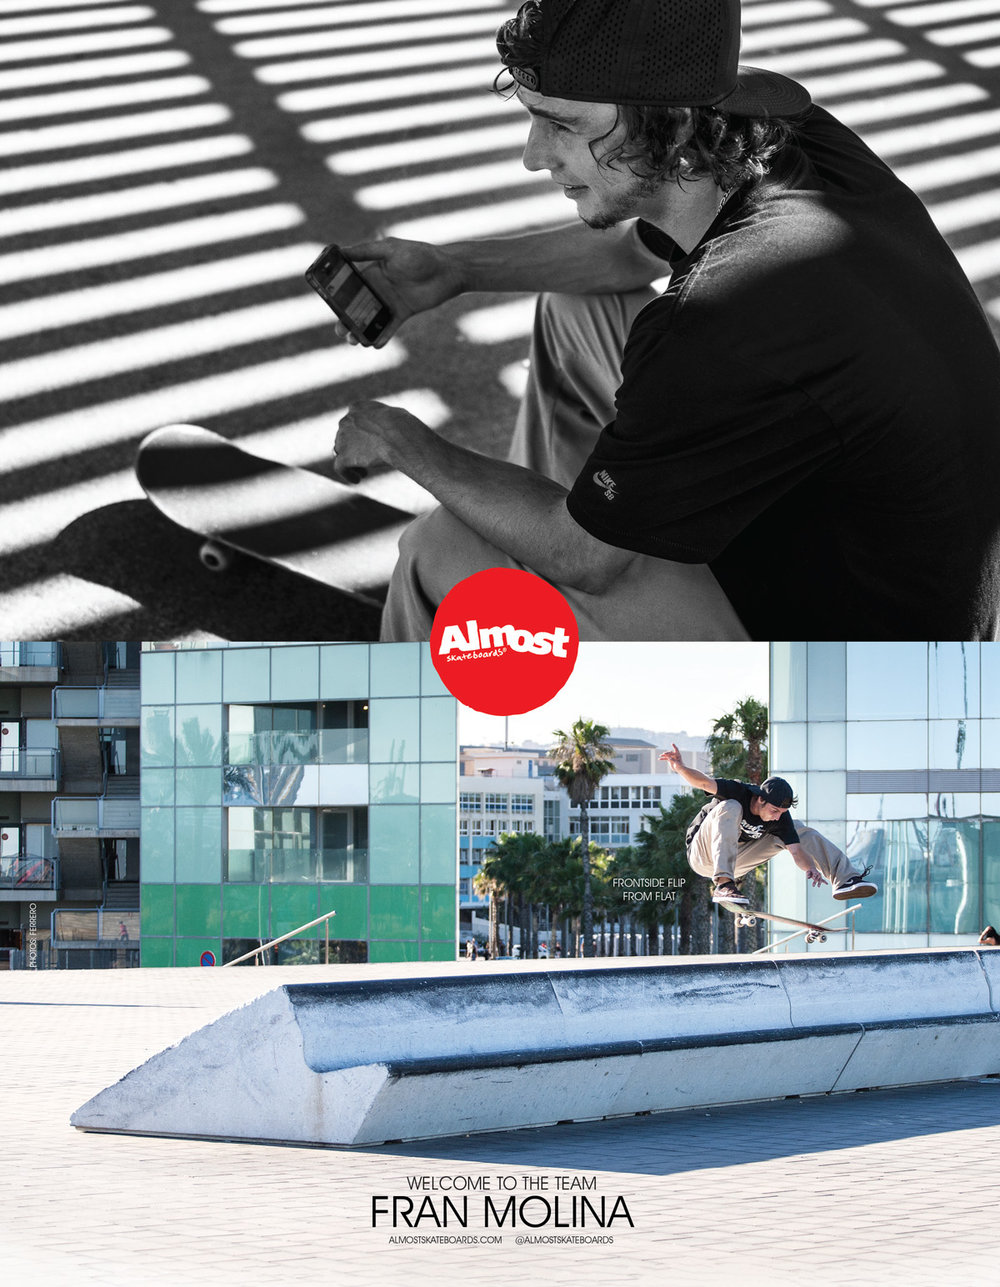 Almost Skateboards Bienvenido Fran Molina welcome ad thrasher magazine